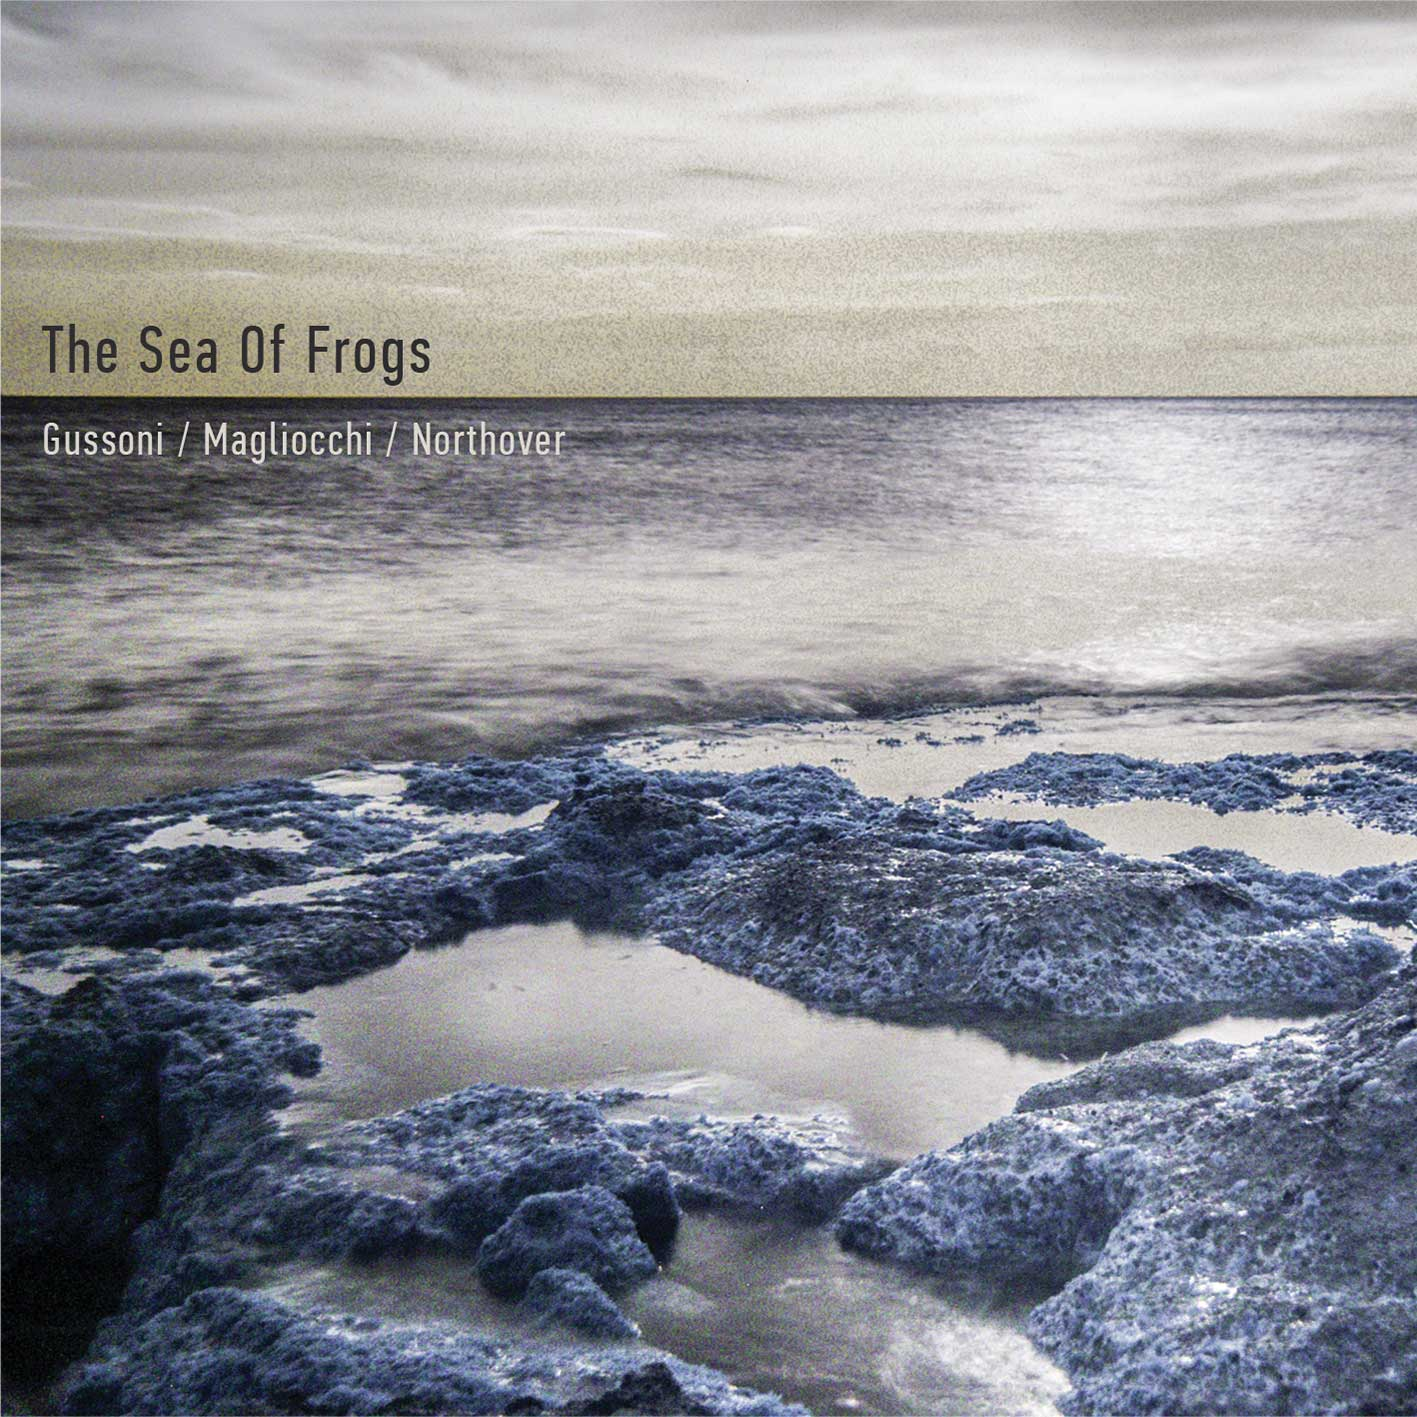 Gussoni / Magliocchi / Northover – The Sea Of Frogs